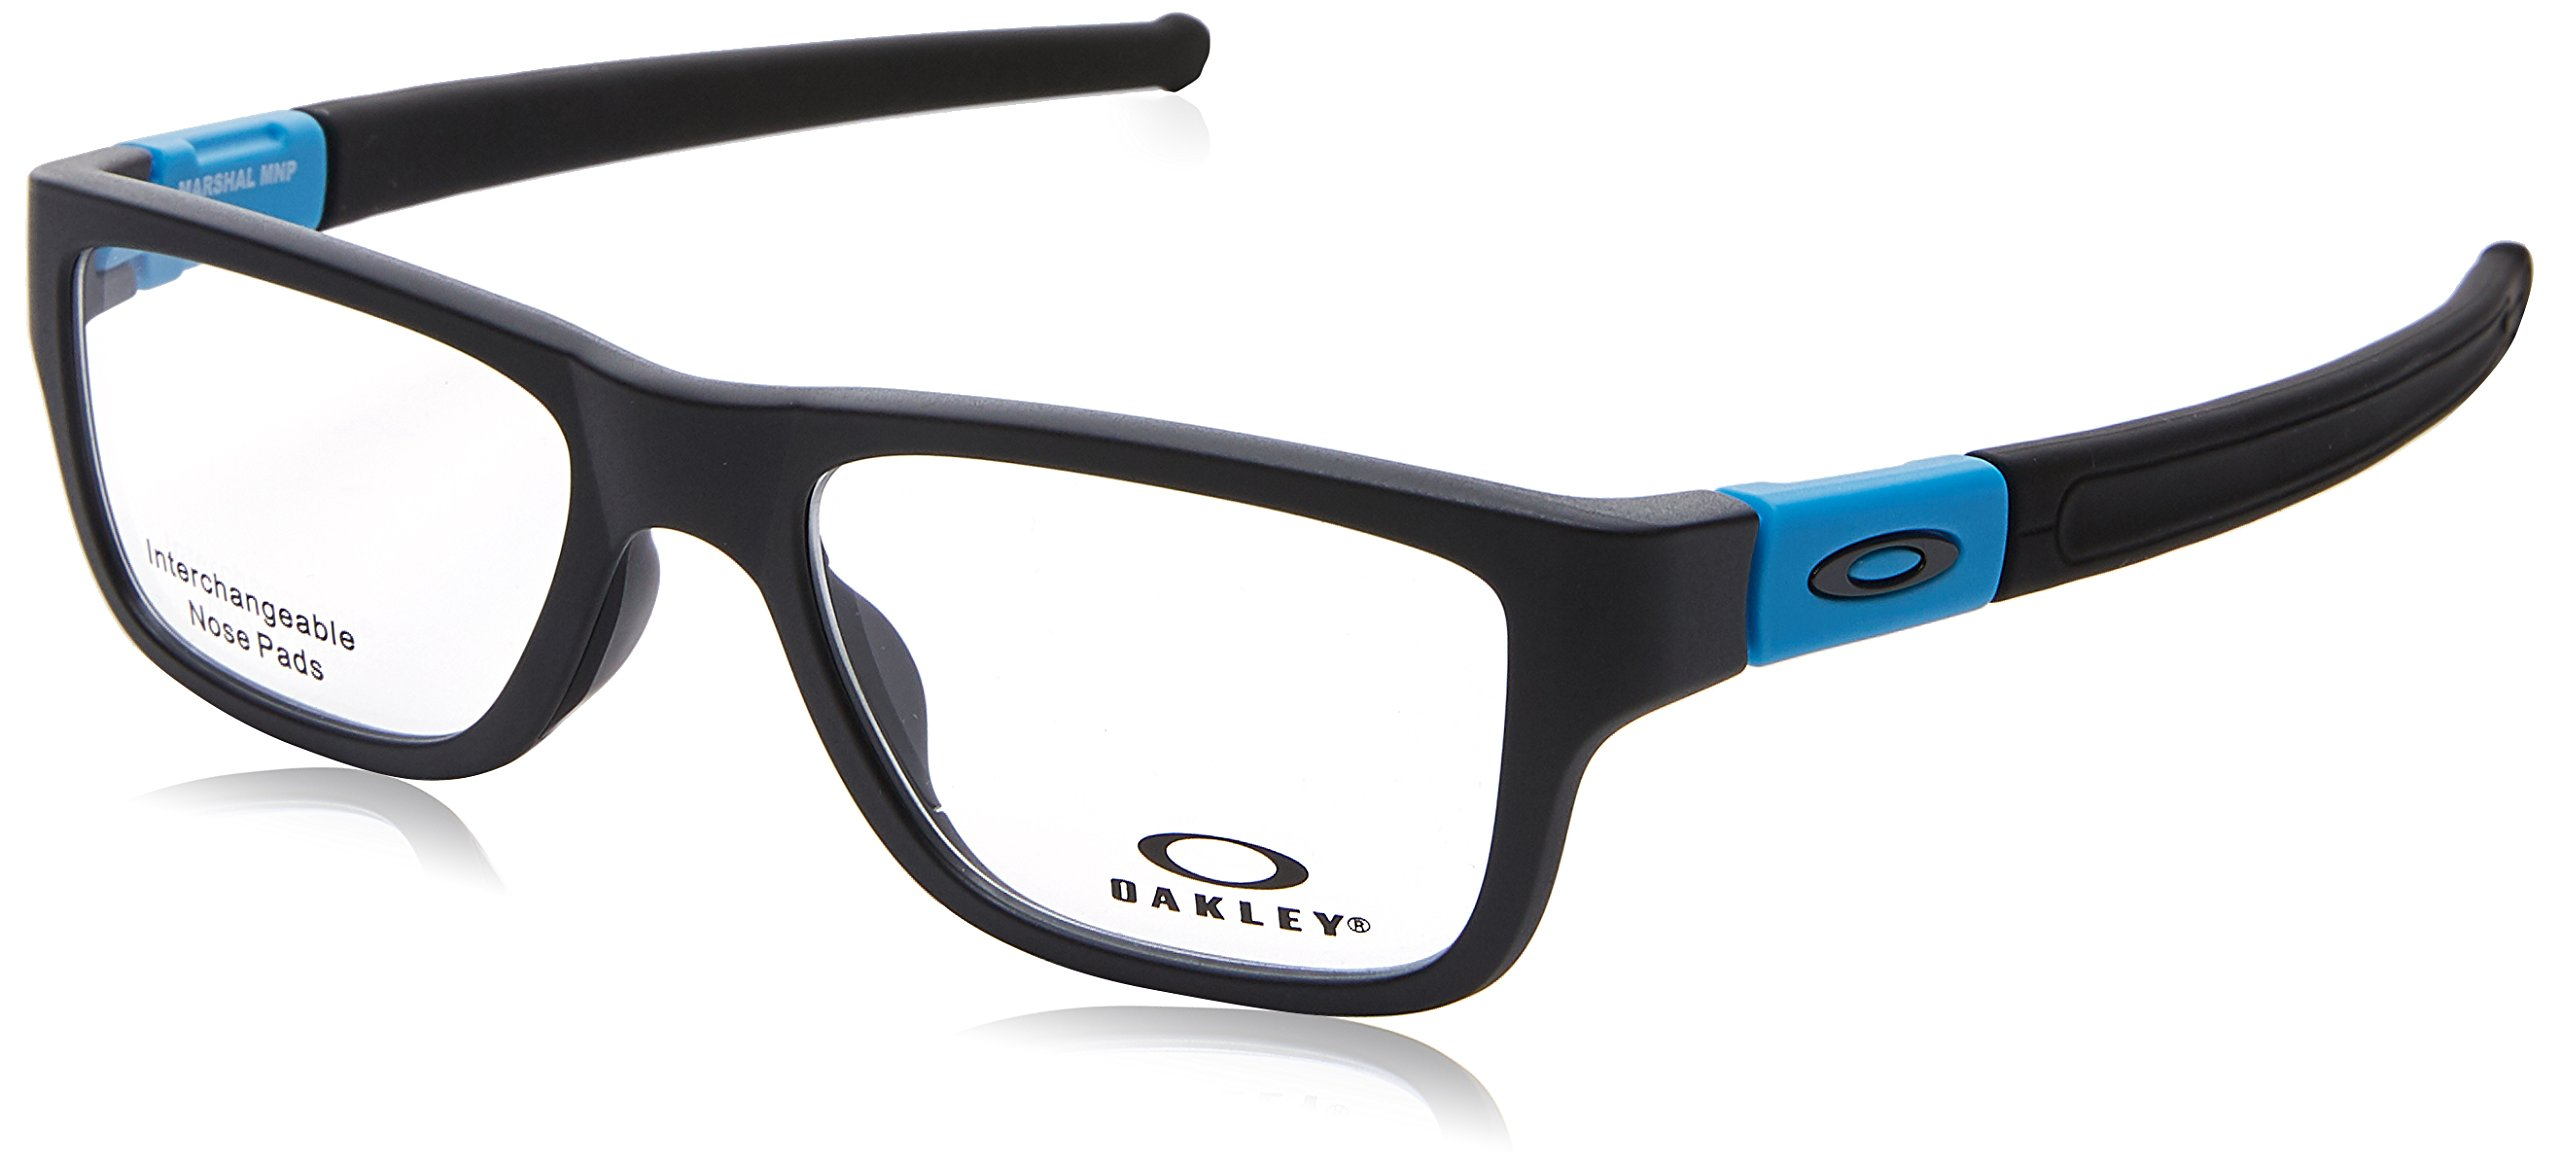 Oakley Marshal (Truebridge) OX8091-0451 Sunglasses Satin Black w/Demo Lens 51mm by Oakley